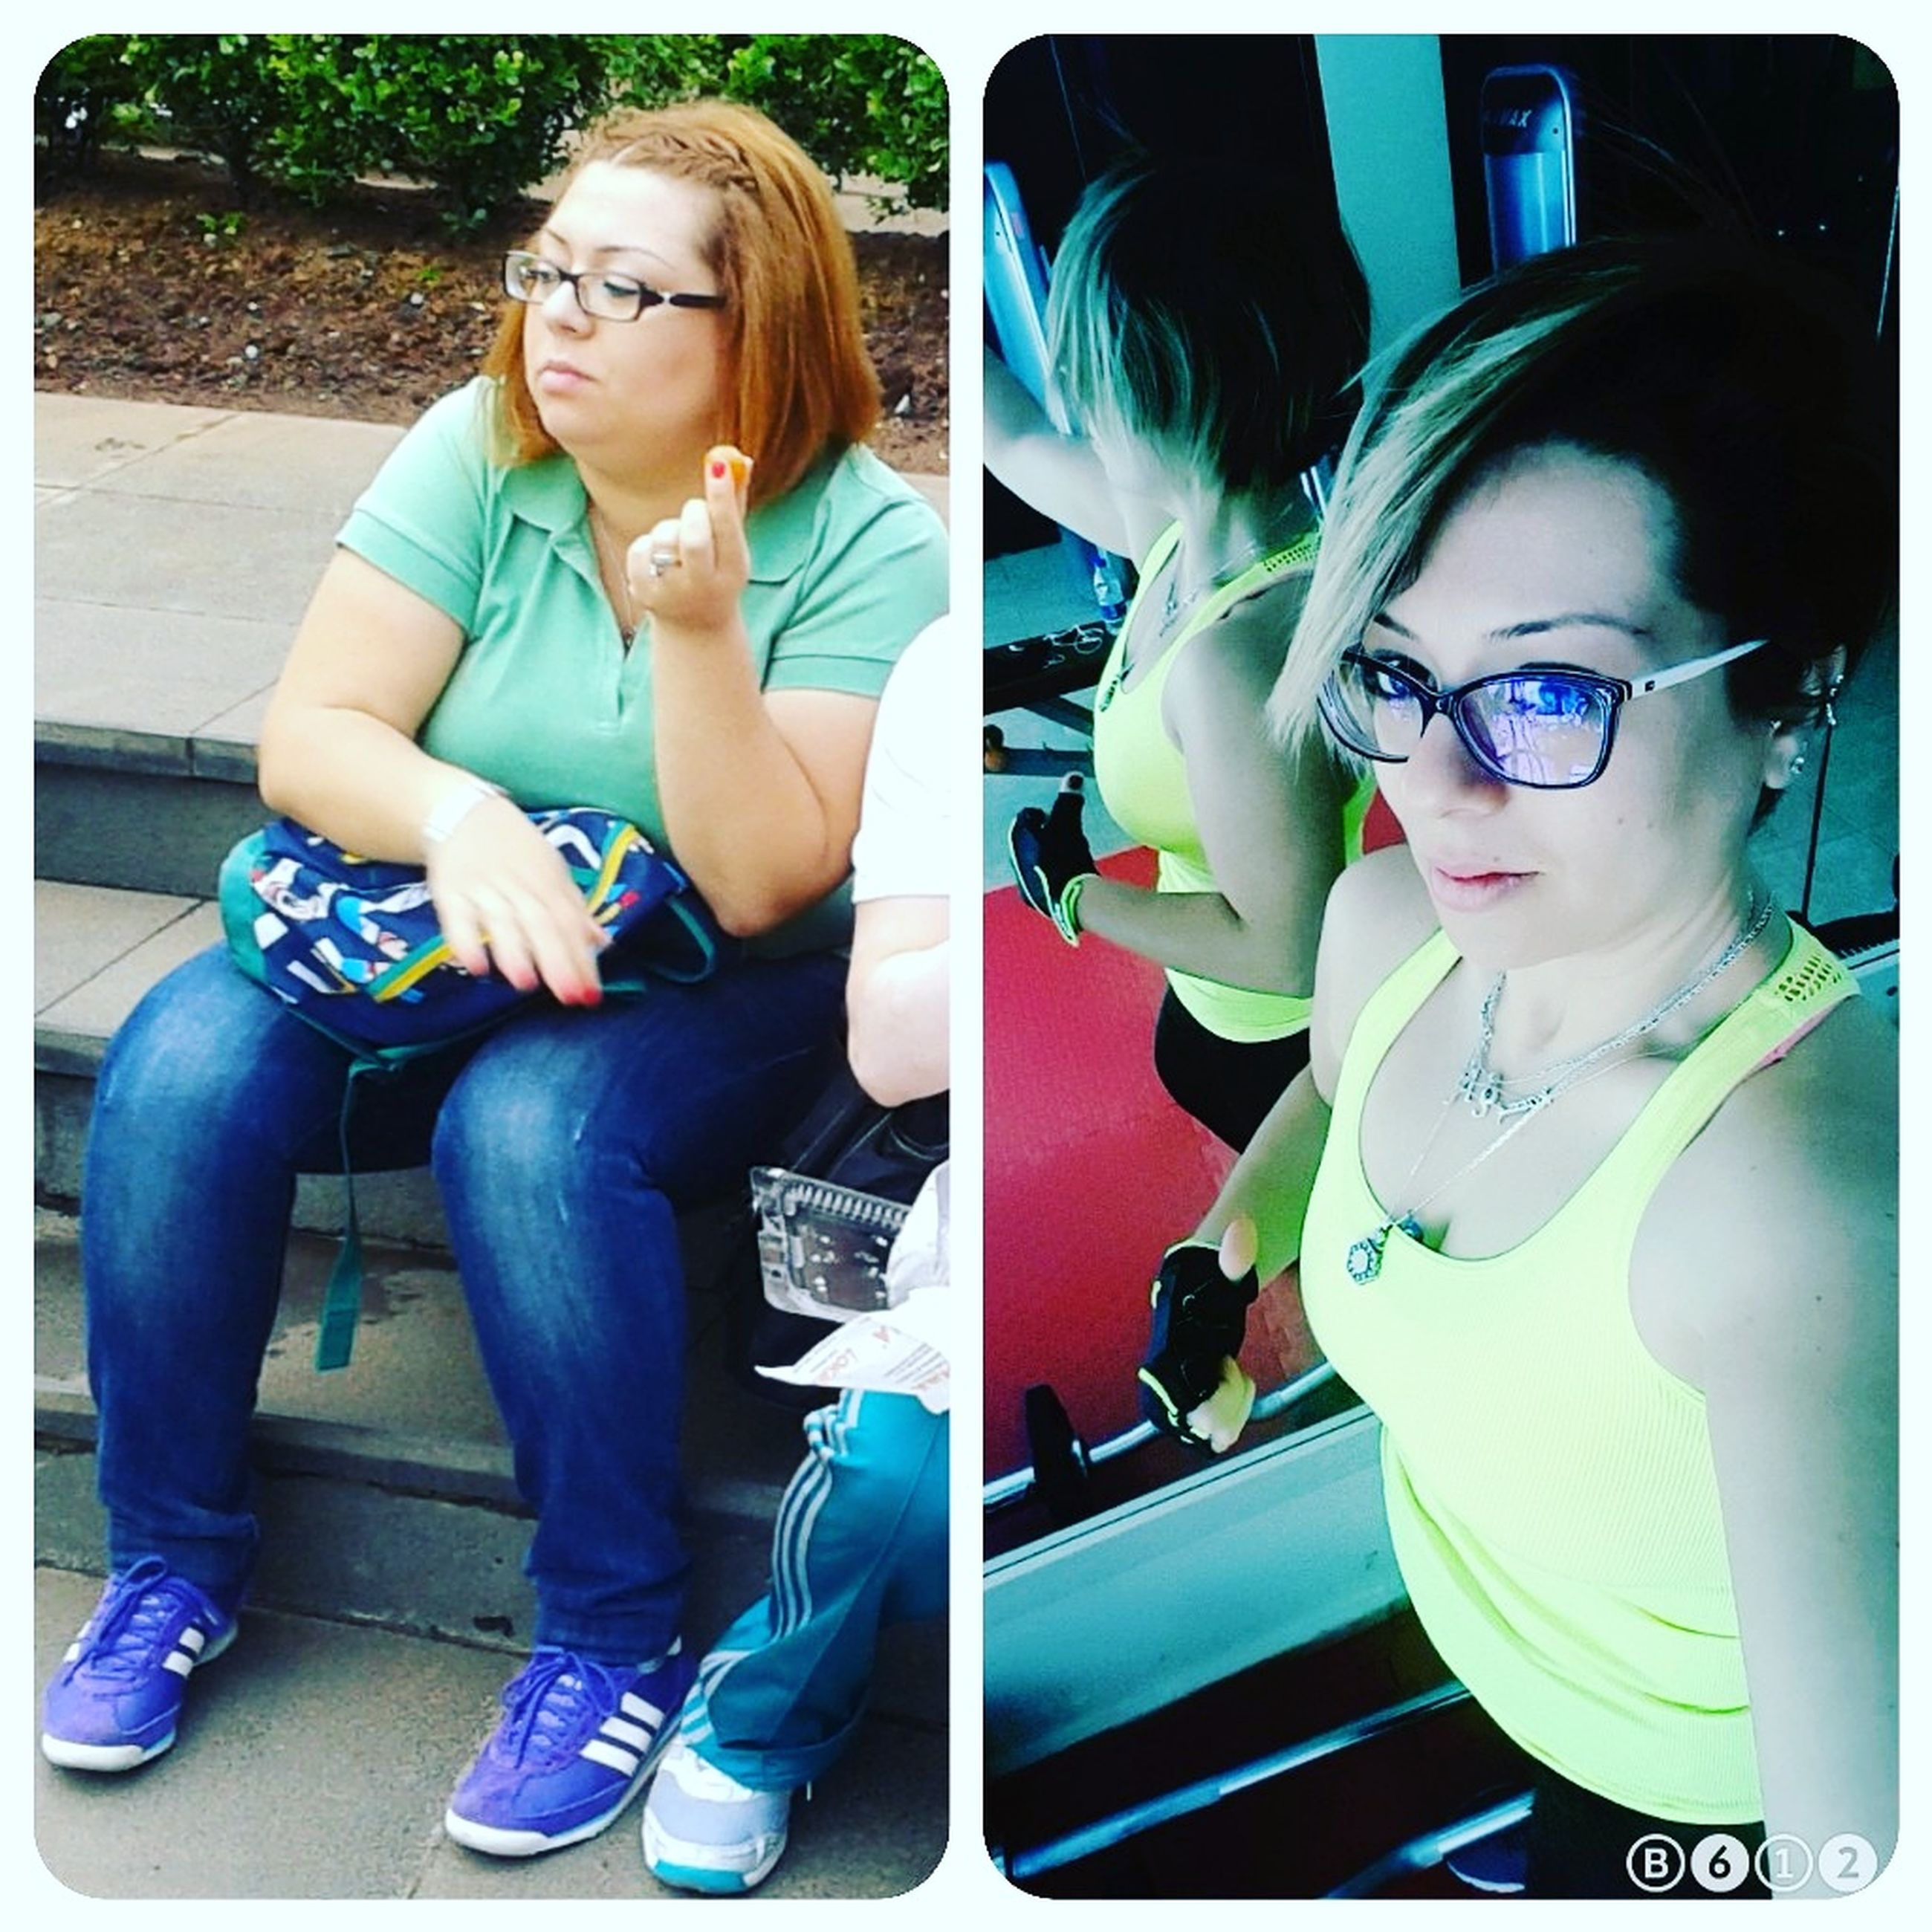 sitting, young adult, young women, real people, casual clothing, eyeglasses, full length, lifestyles, day, multiple image